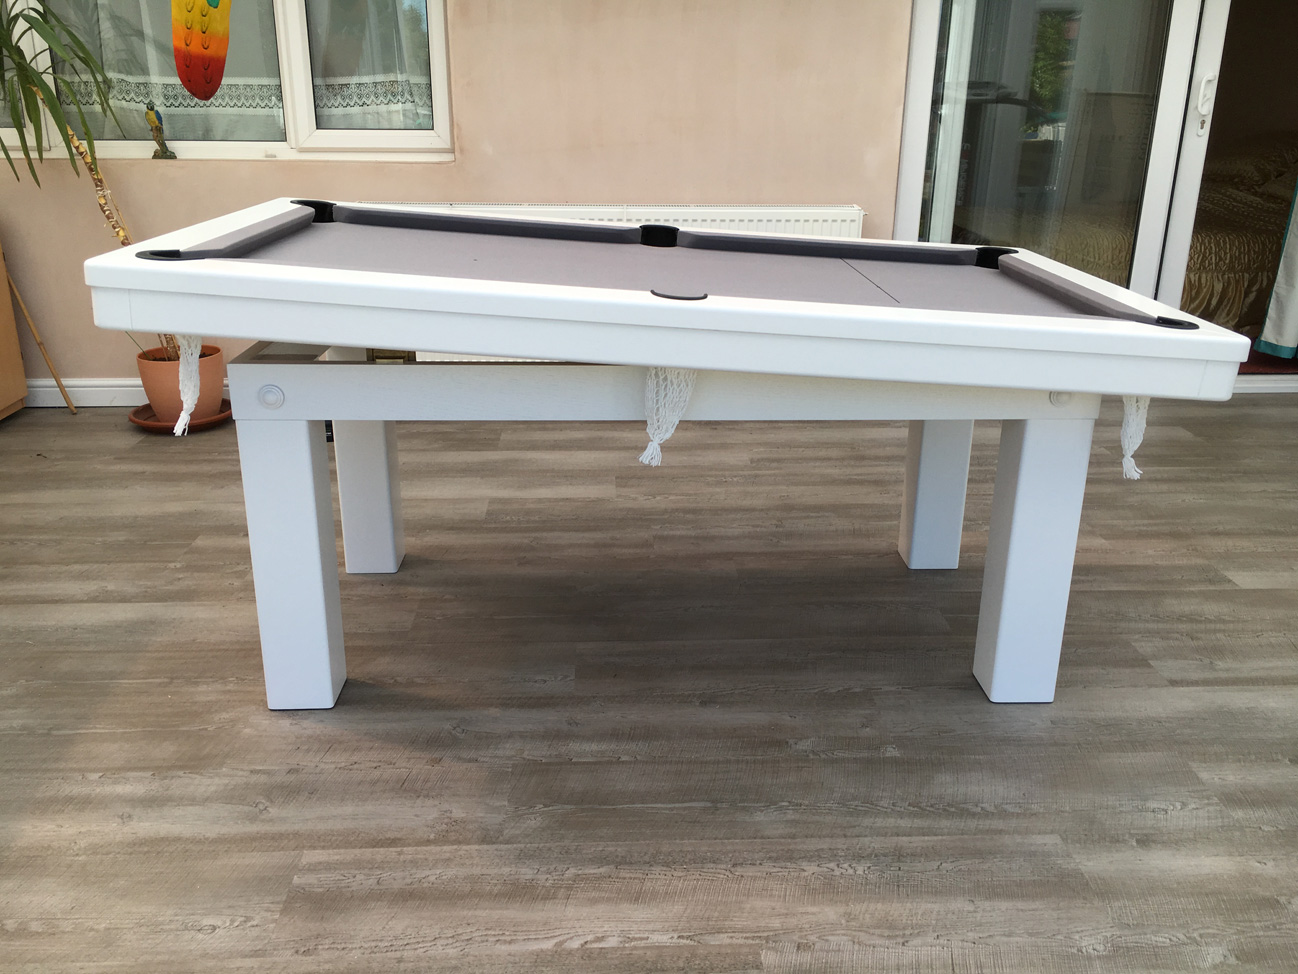 Modern 6ft Pool Dining Table in White Silver Pool  : 3134 from www.snookerandpooltablecompany.com size 1298 x 974 jpeg 378kB